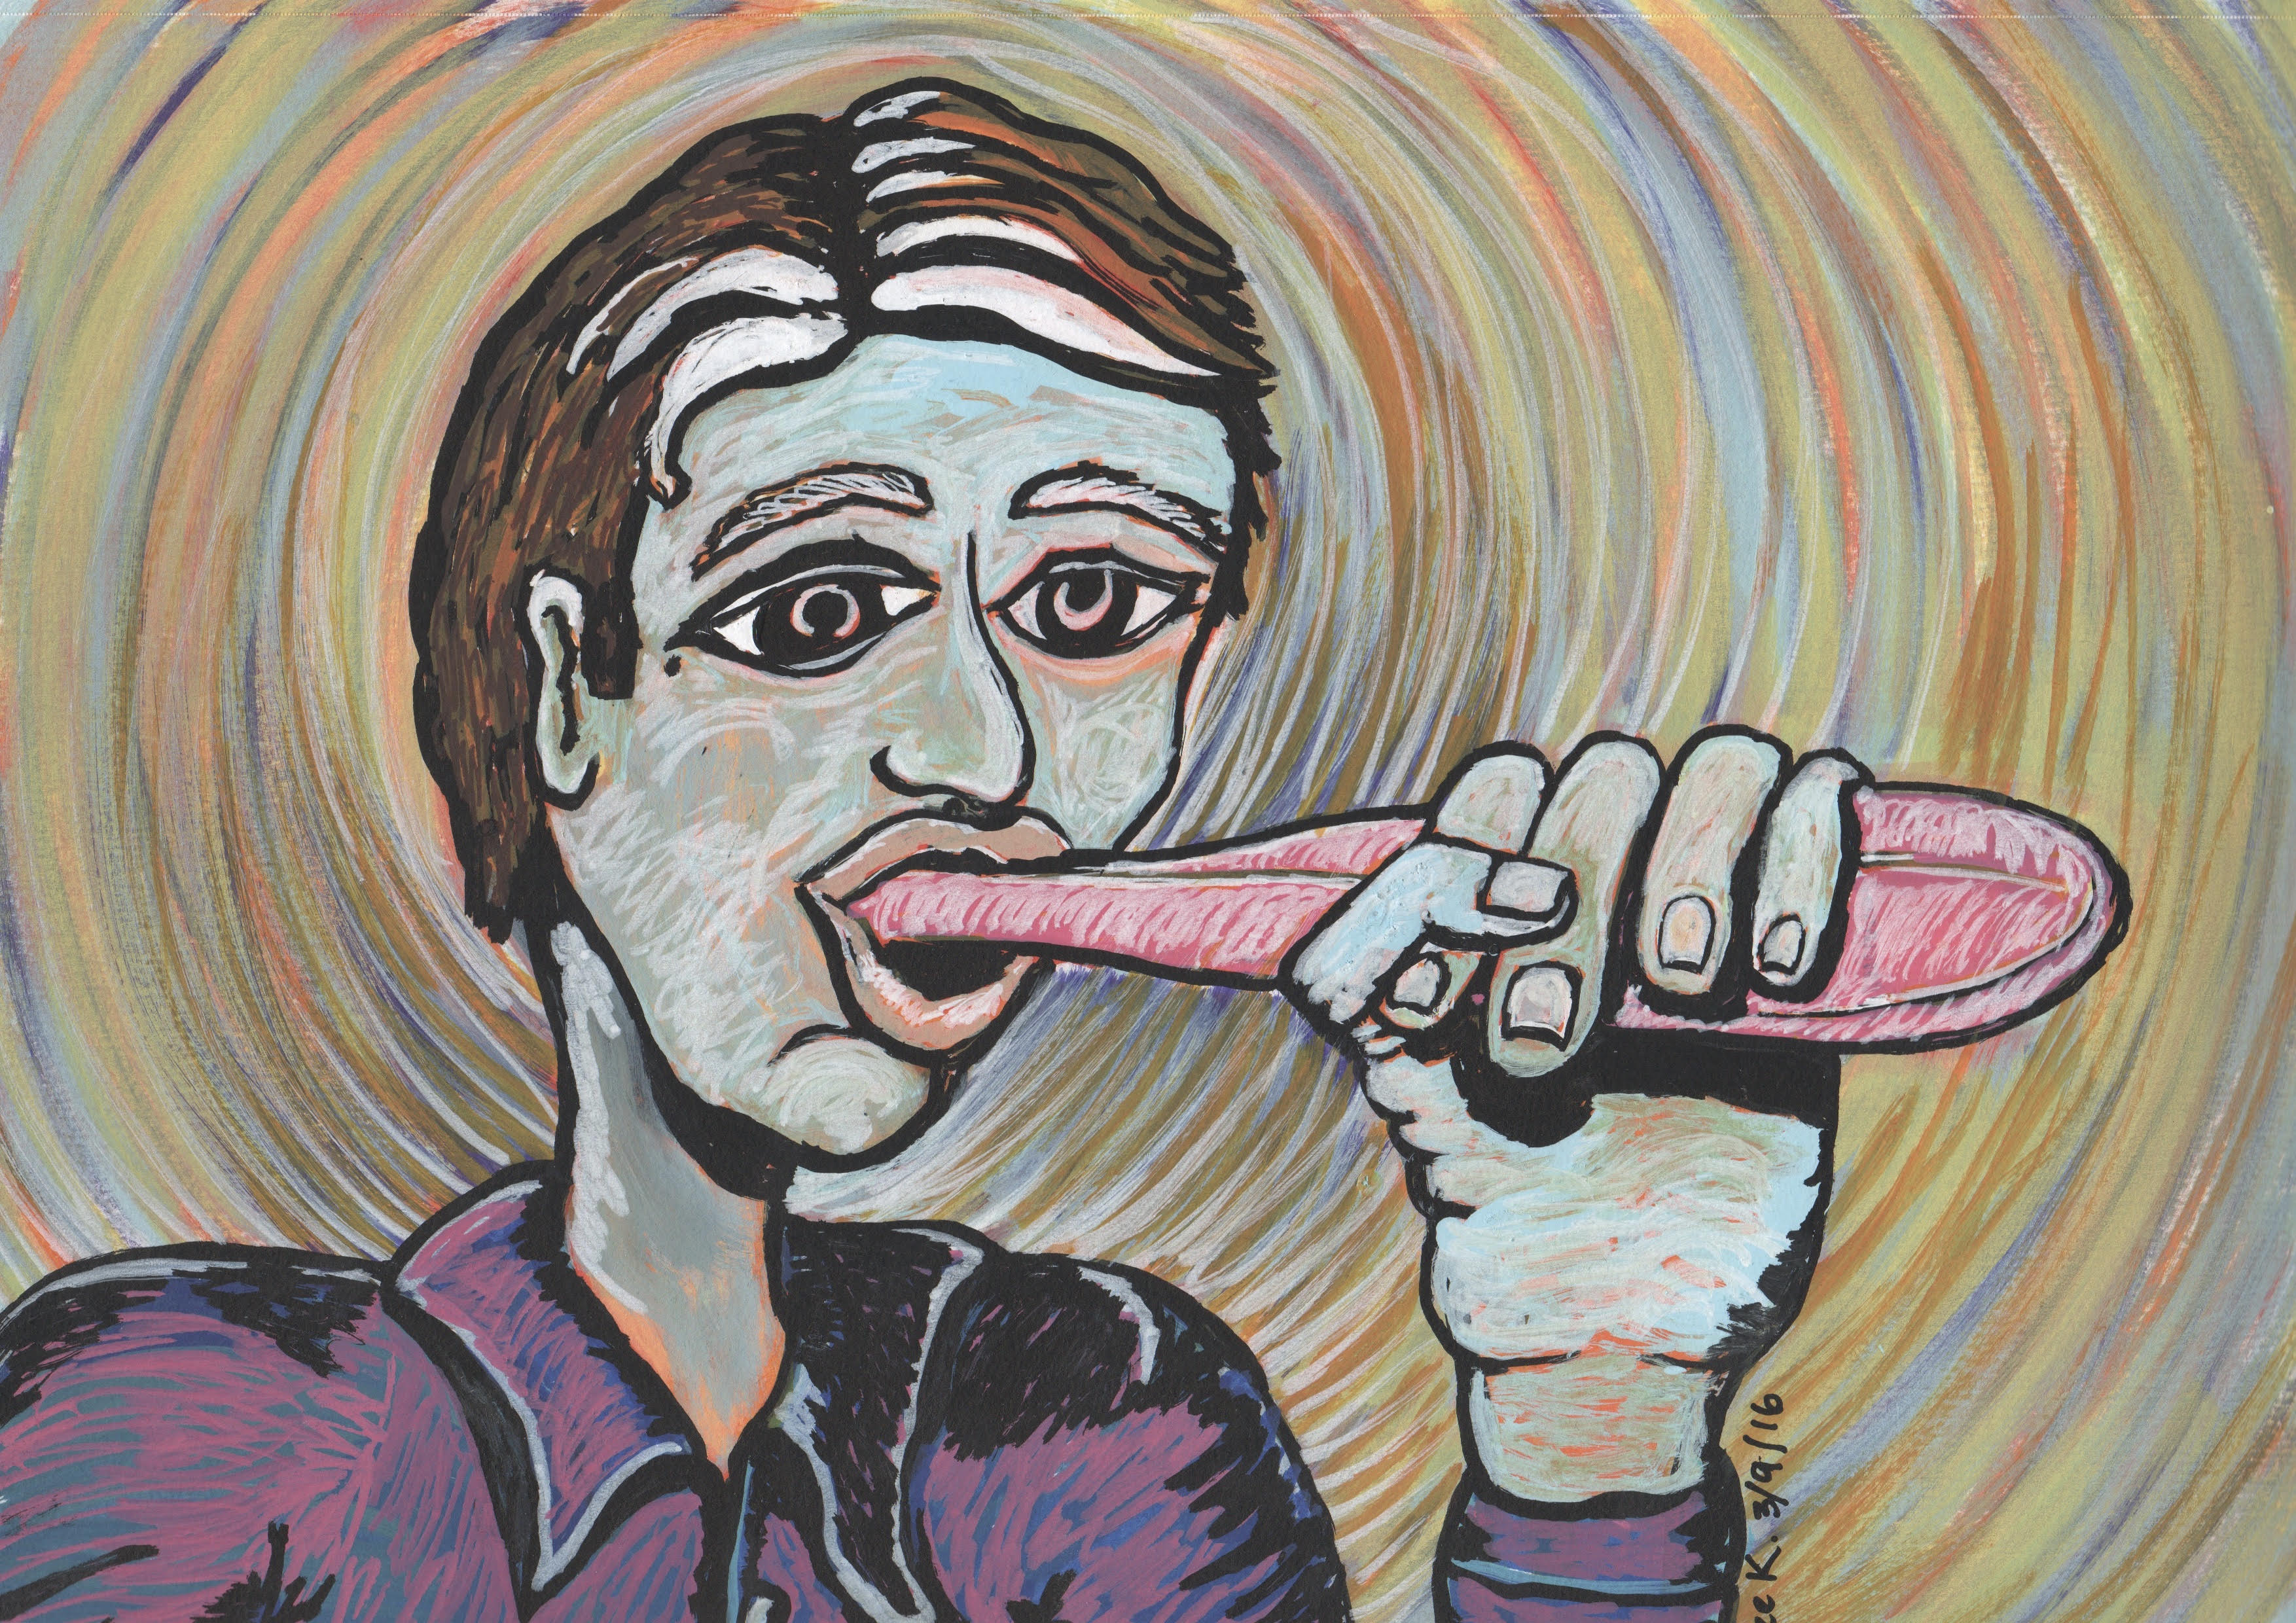 An abstract painting of a man holding his tongue which is much larger than normal.